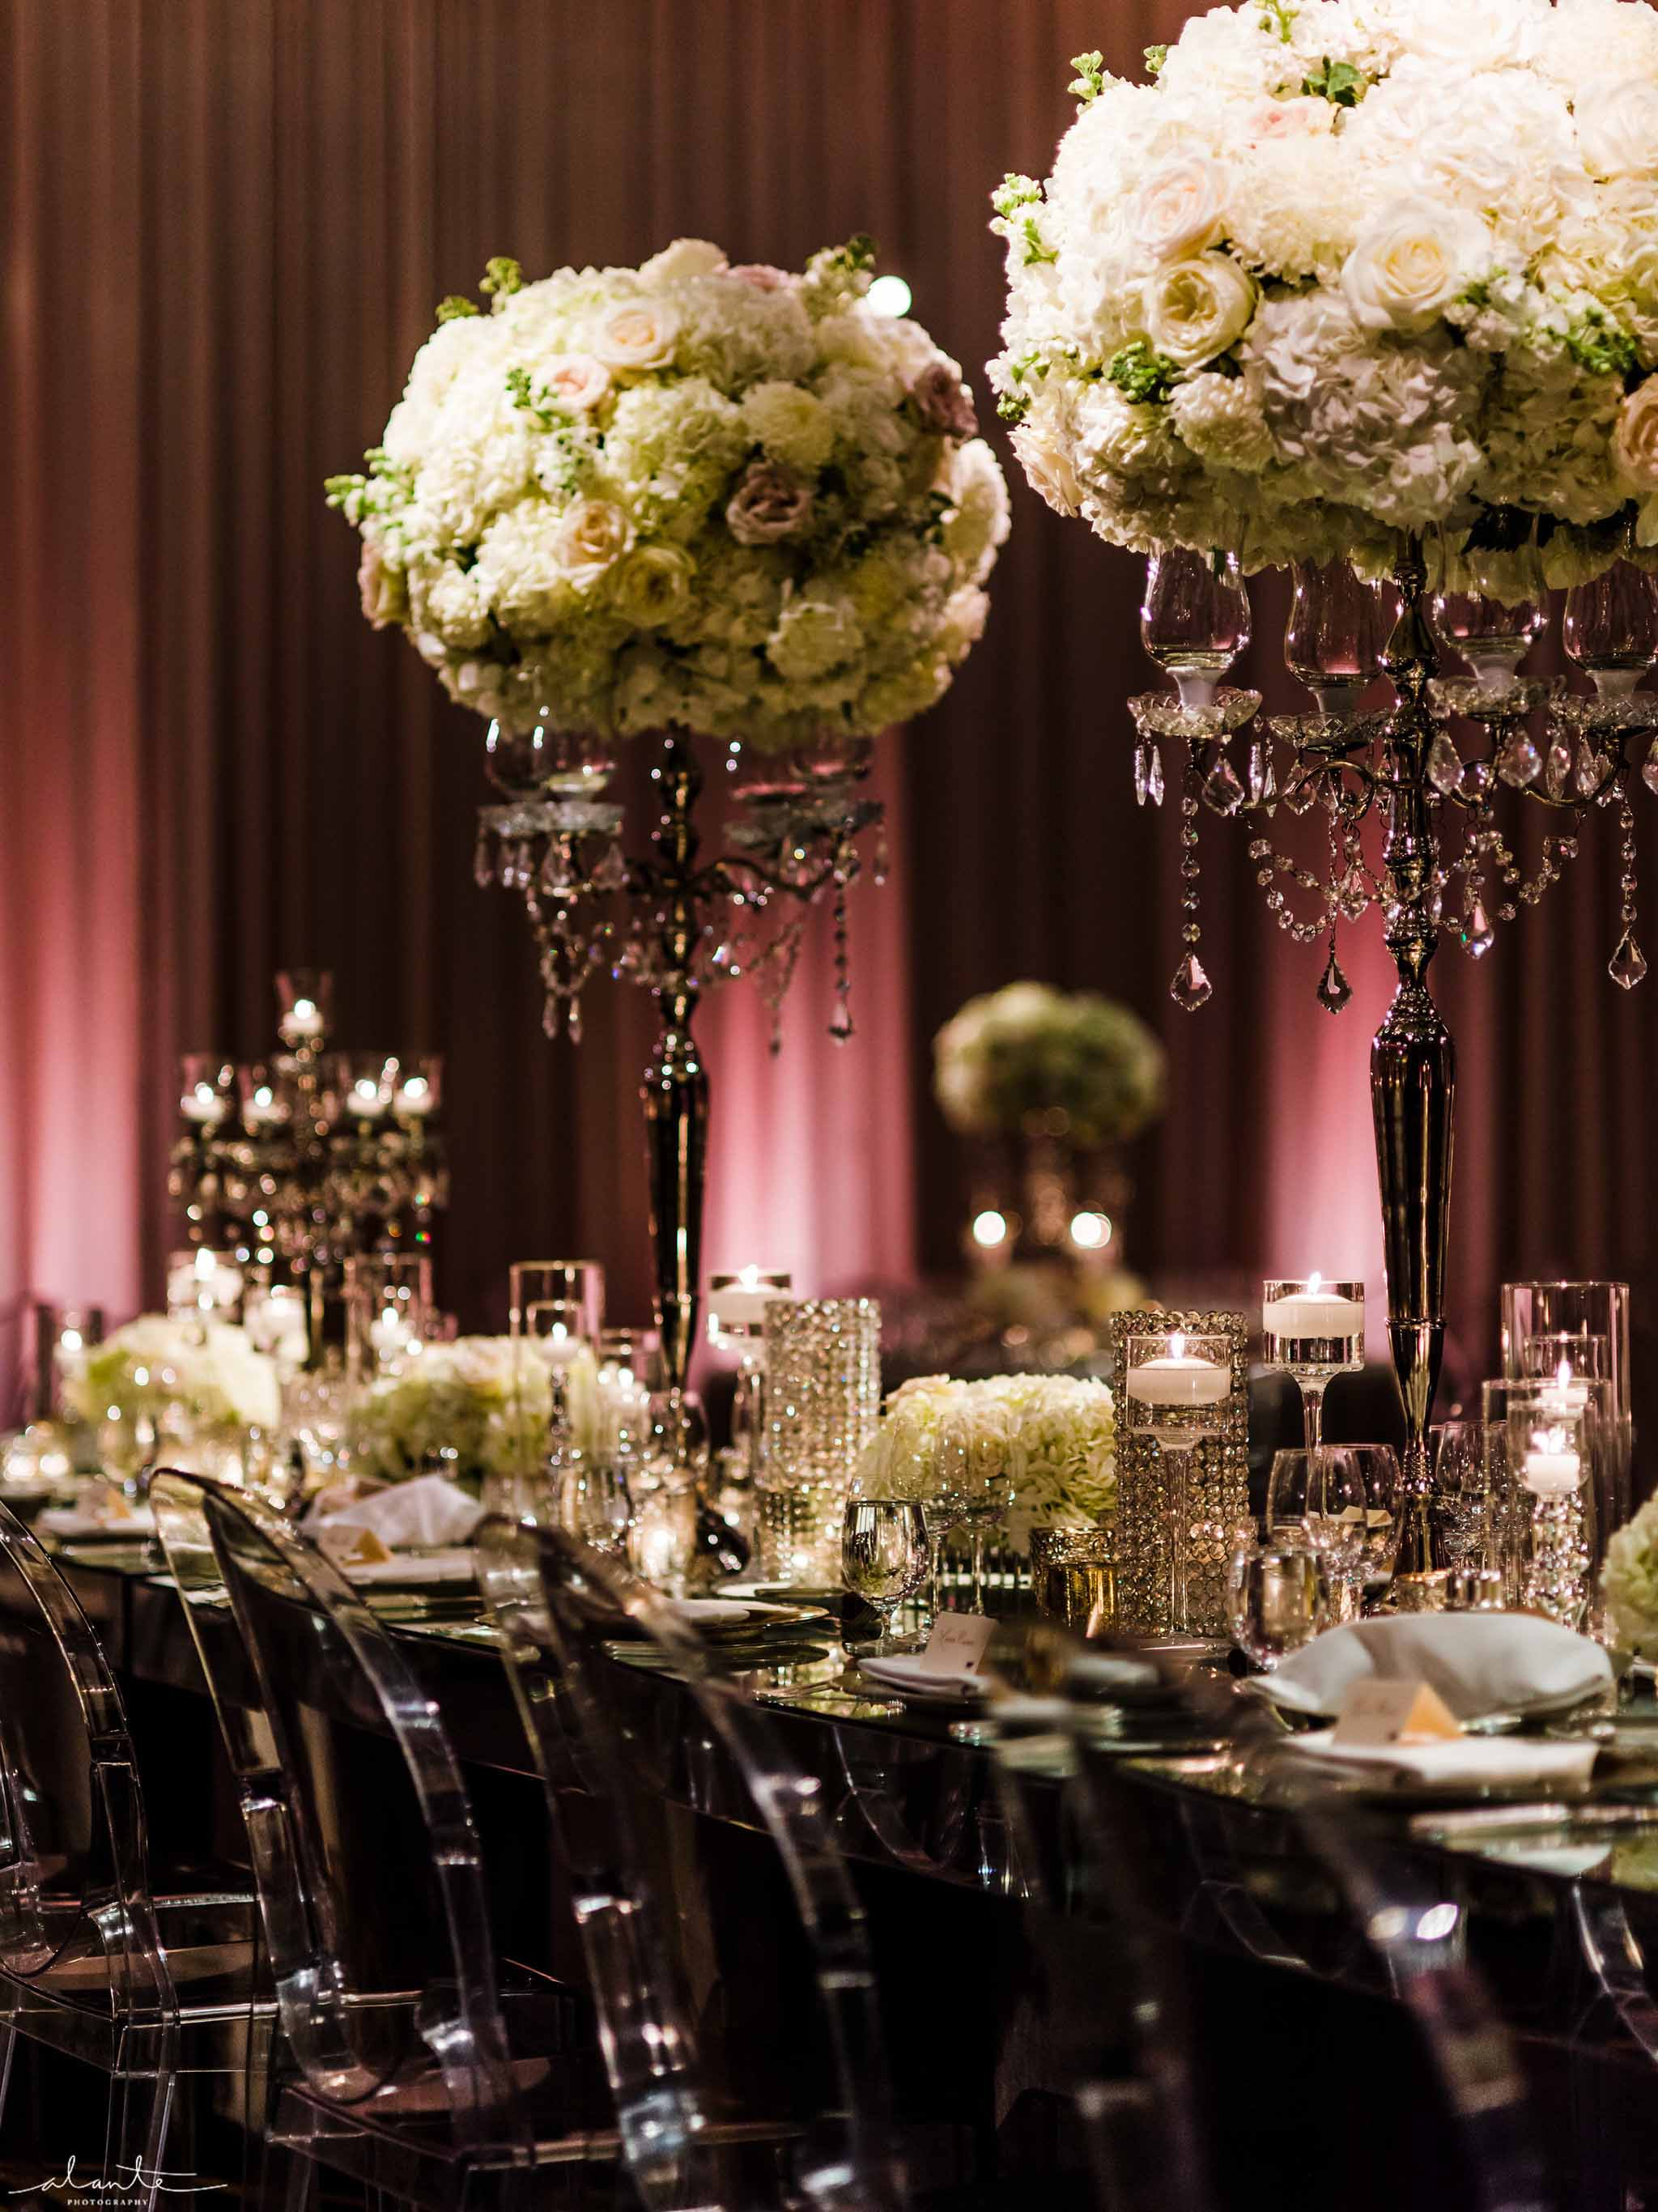 Tall, white floral centerpieces in wedding head table - Luxury Winter Wedding at the Four Seasons by Flora Nova Design Seattle